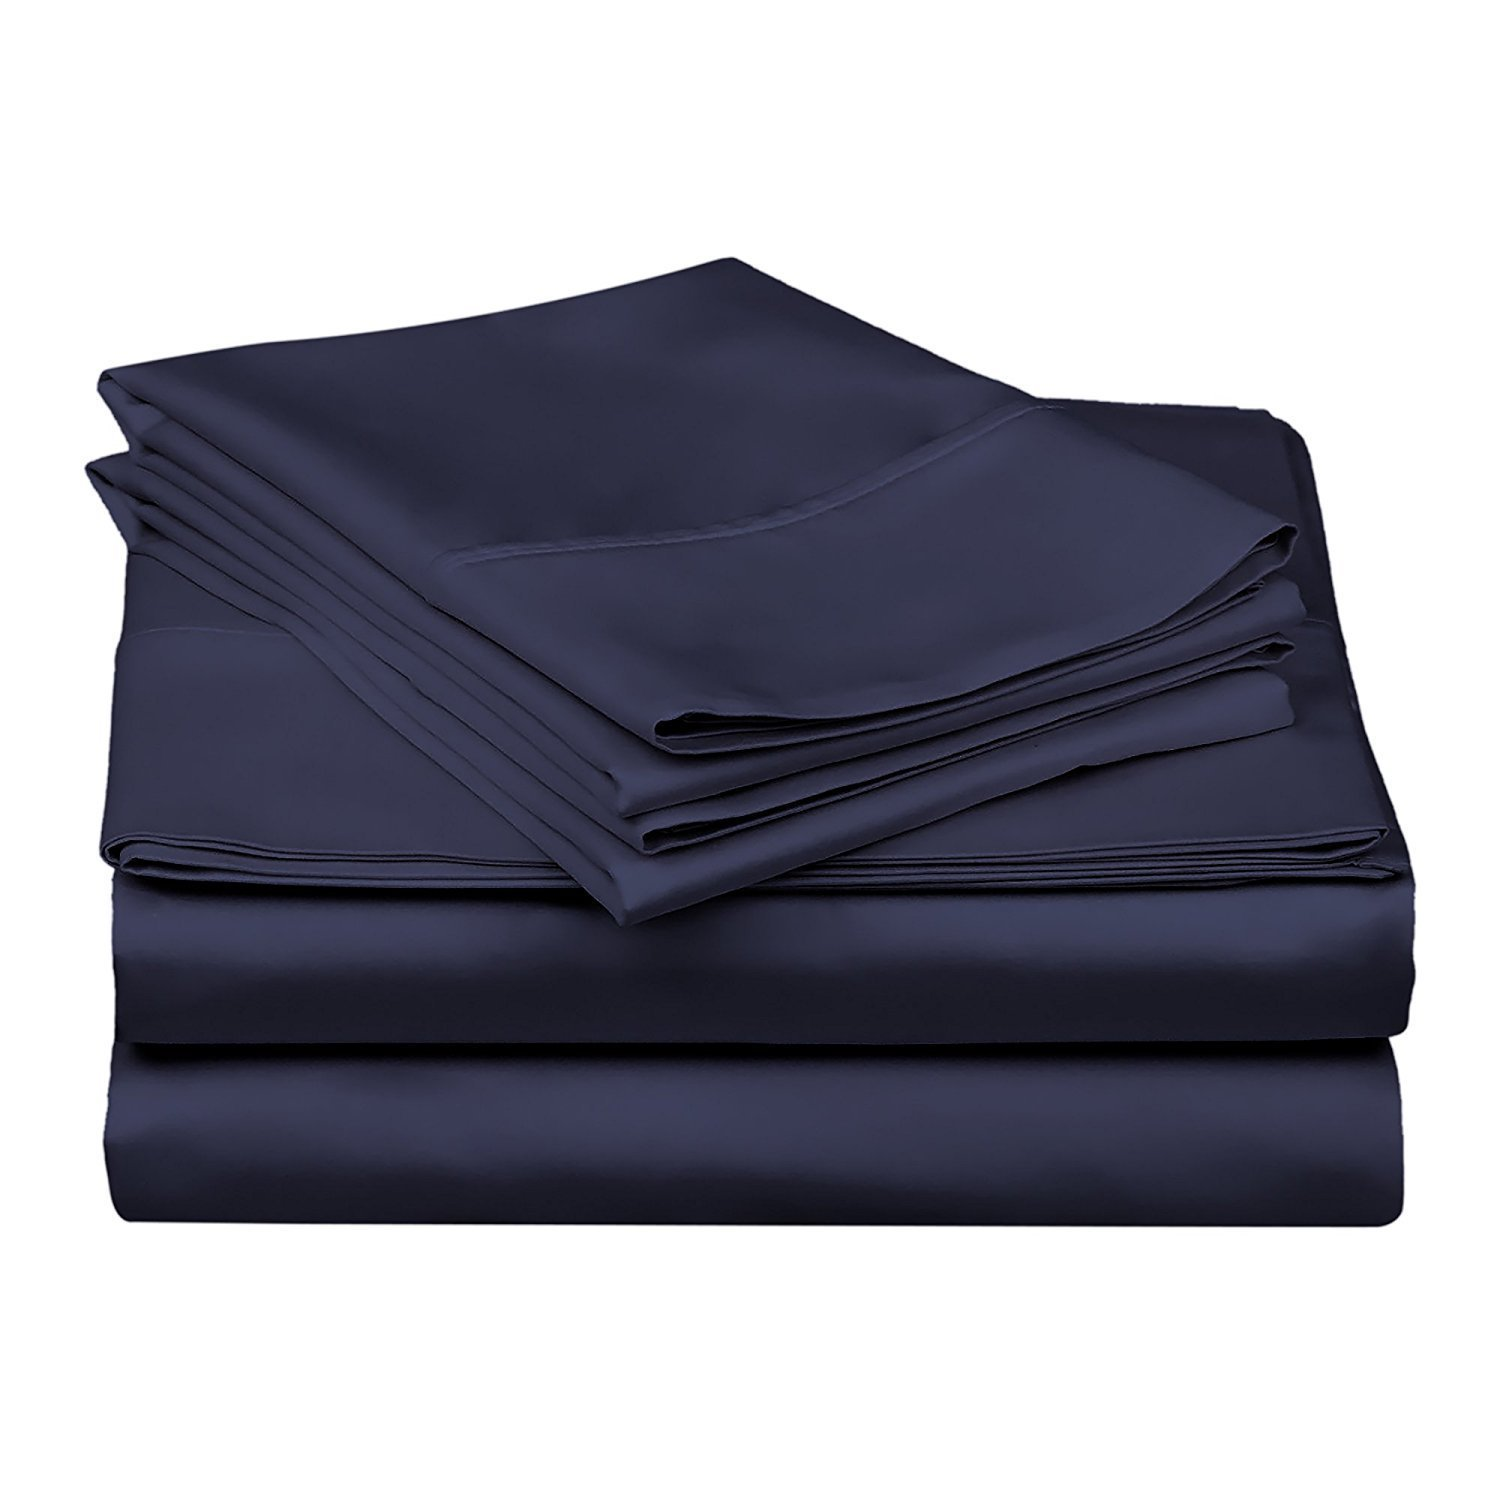 Rajlinen Ultra Soft Cozy 100% Percale Cotton 4 PCs Bed Sheet Set - 400 Thread Count 15 inch Deep Pocket - Extremely Smooth Stronger Durable Quality Bedding (Navy Blue Solid,Twin-XL)